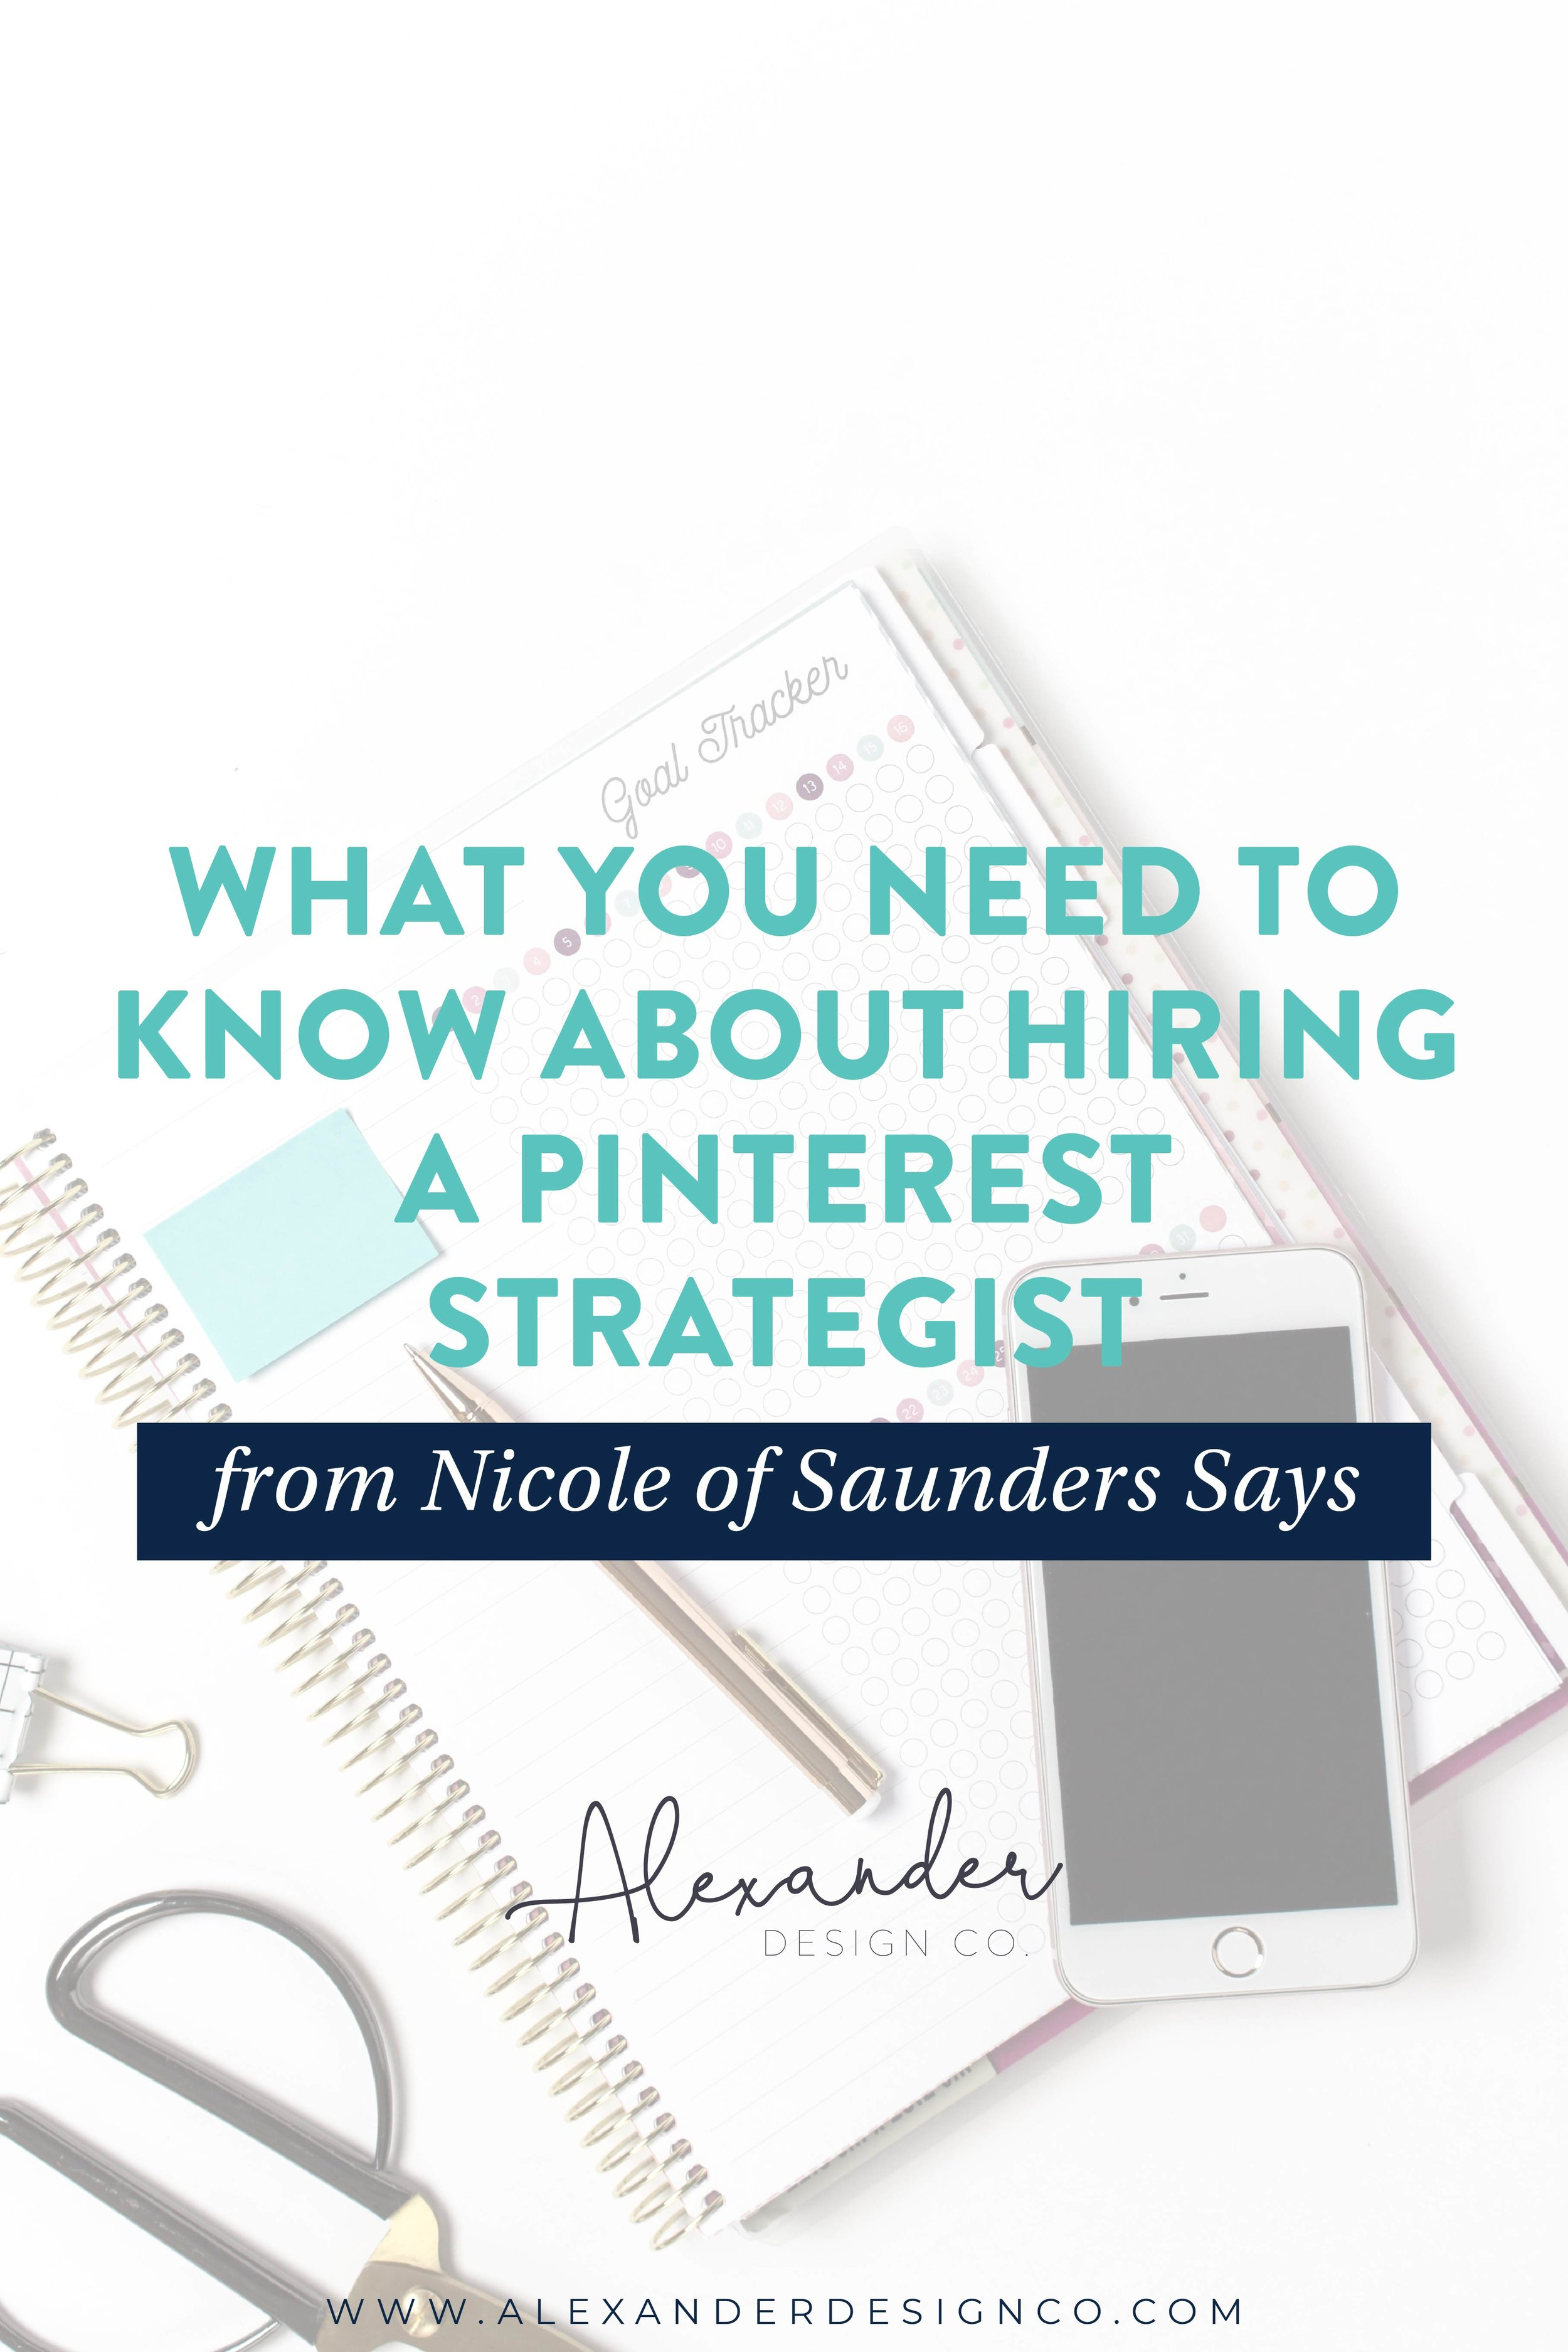 What you need to know about hiring a Pinterest Strategist from Nicole of Saunders Says_Pinterest.jpg